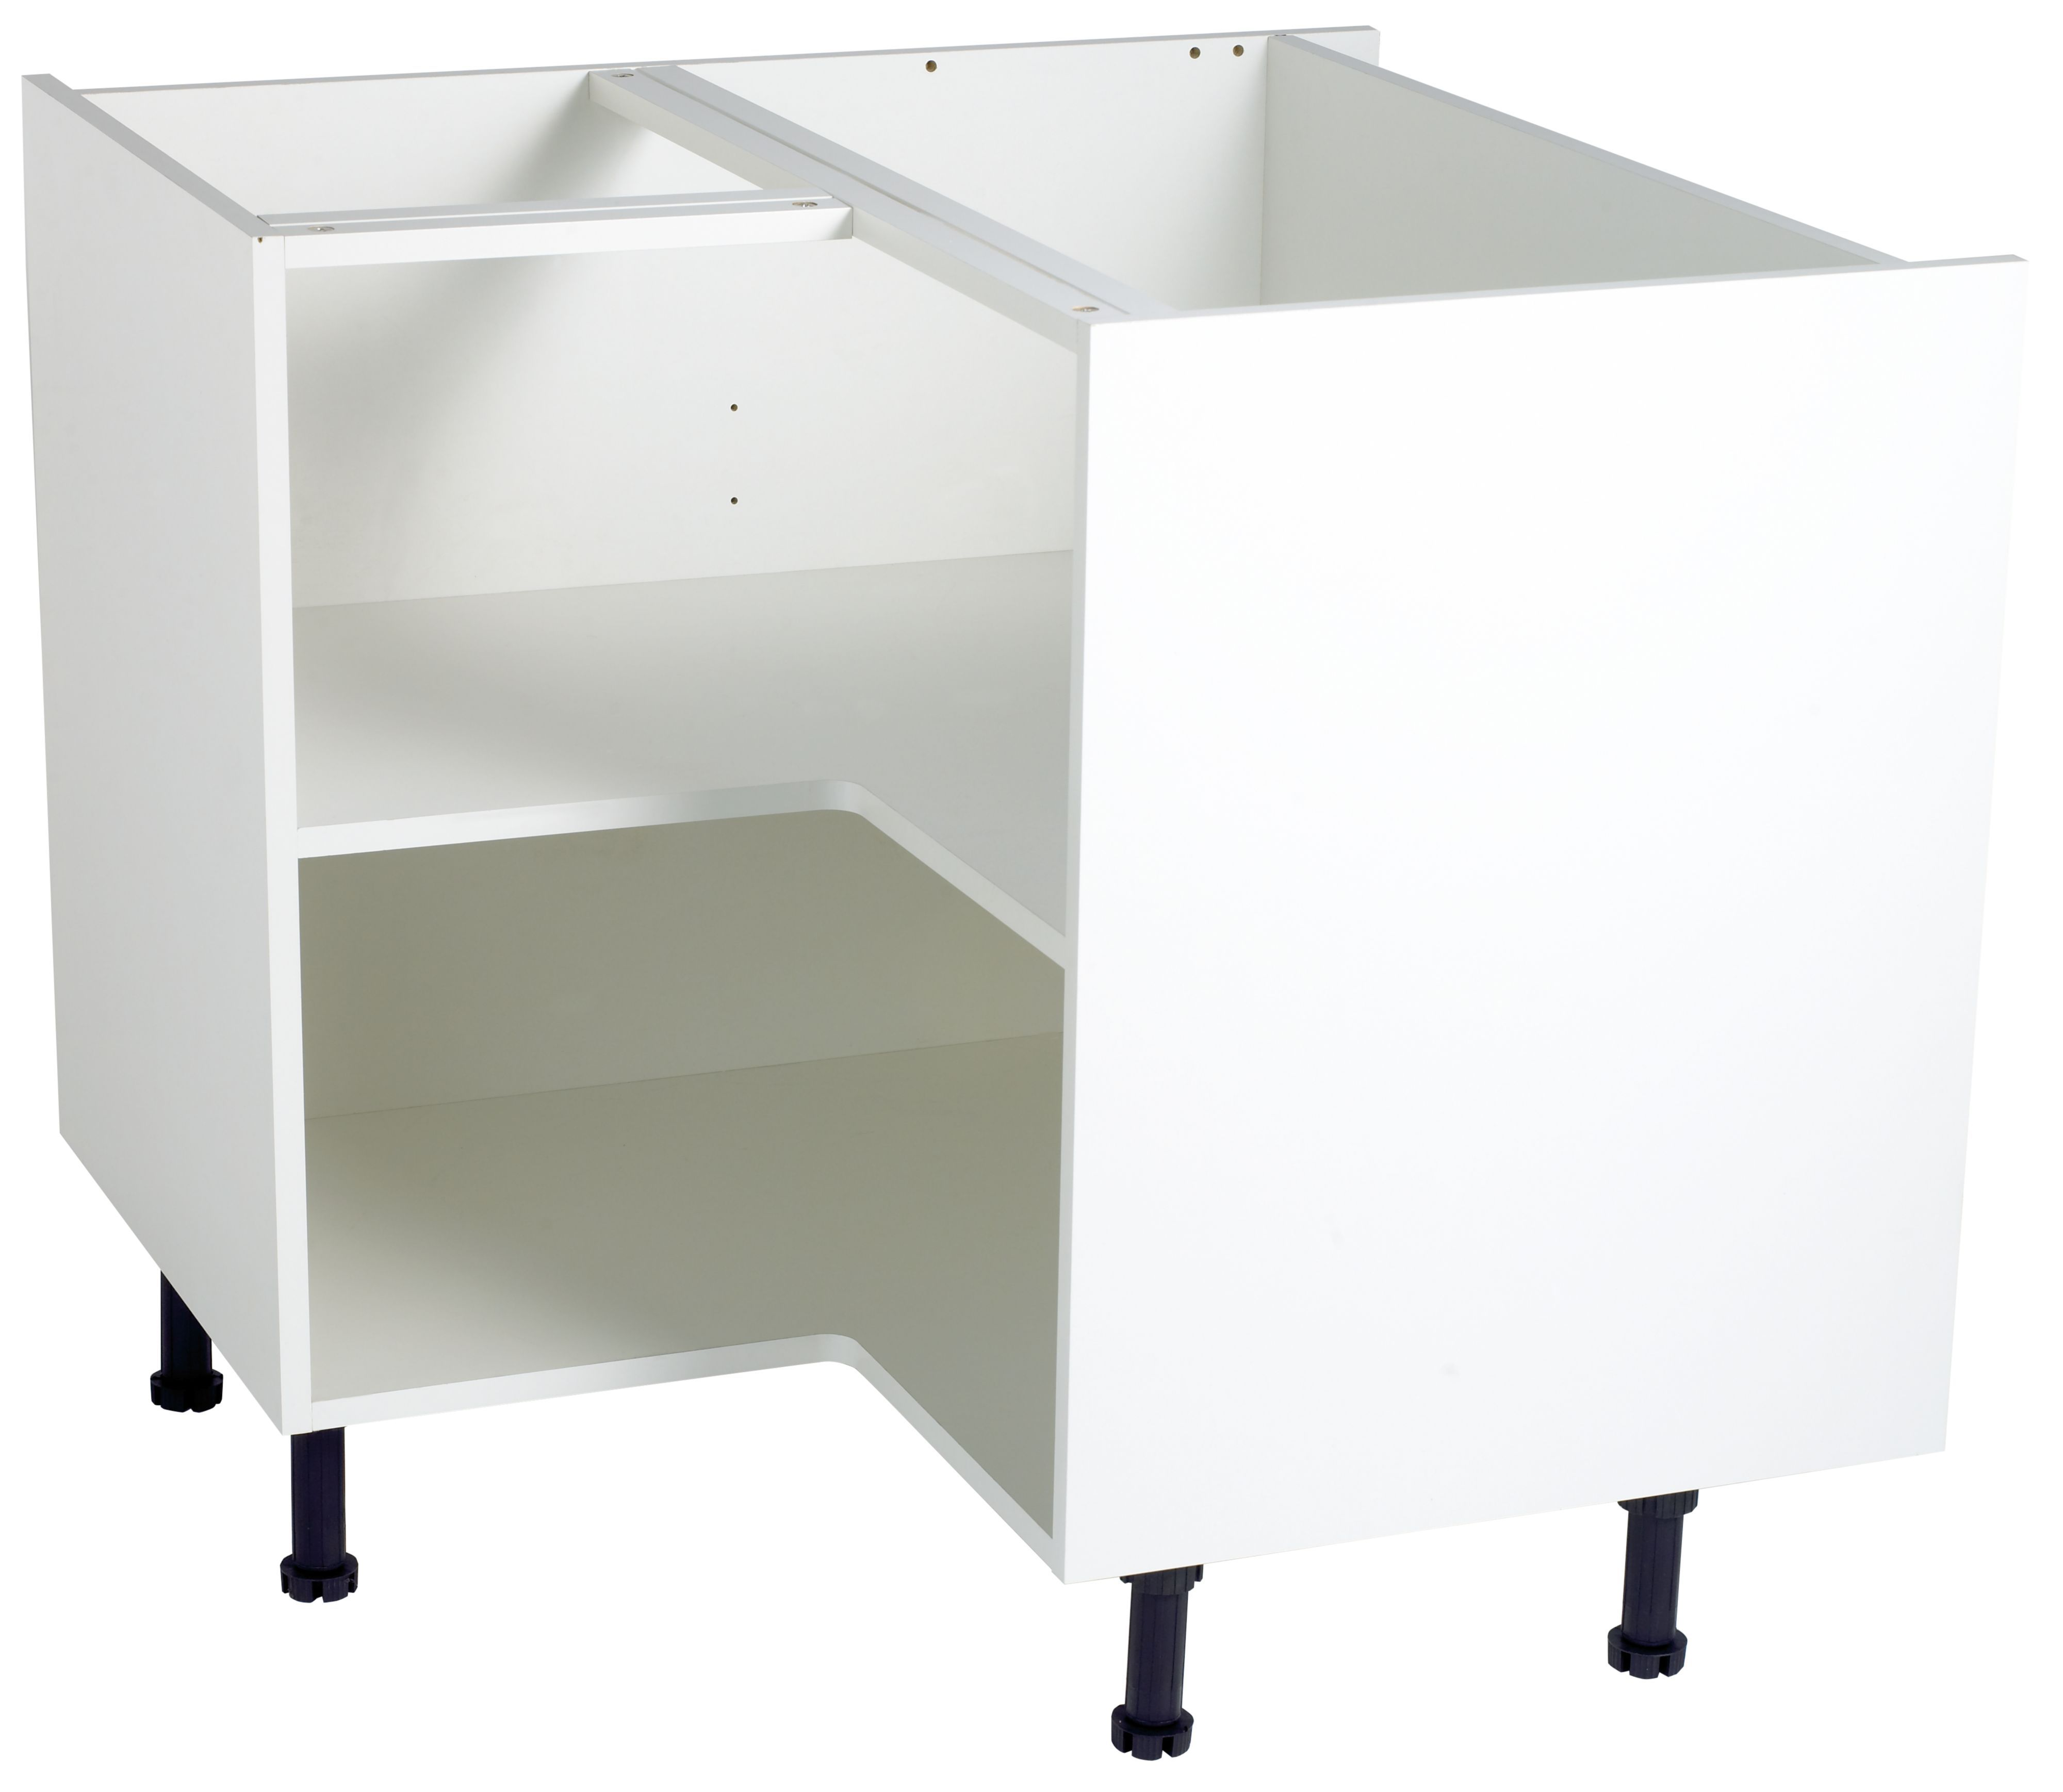 Kitchen Cabinet Carcasses: Cooke & Lewis White Standard Corner Base Cabinet Unit